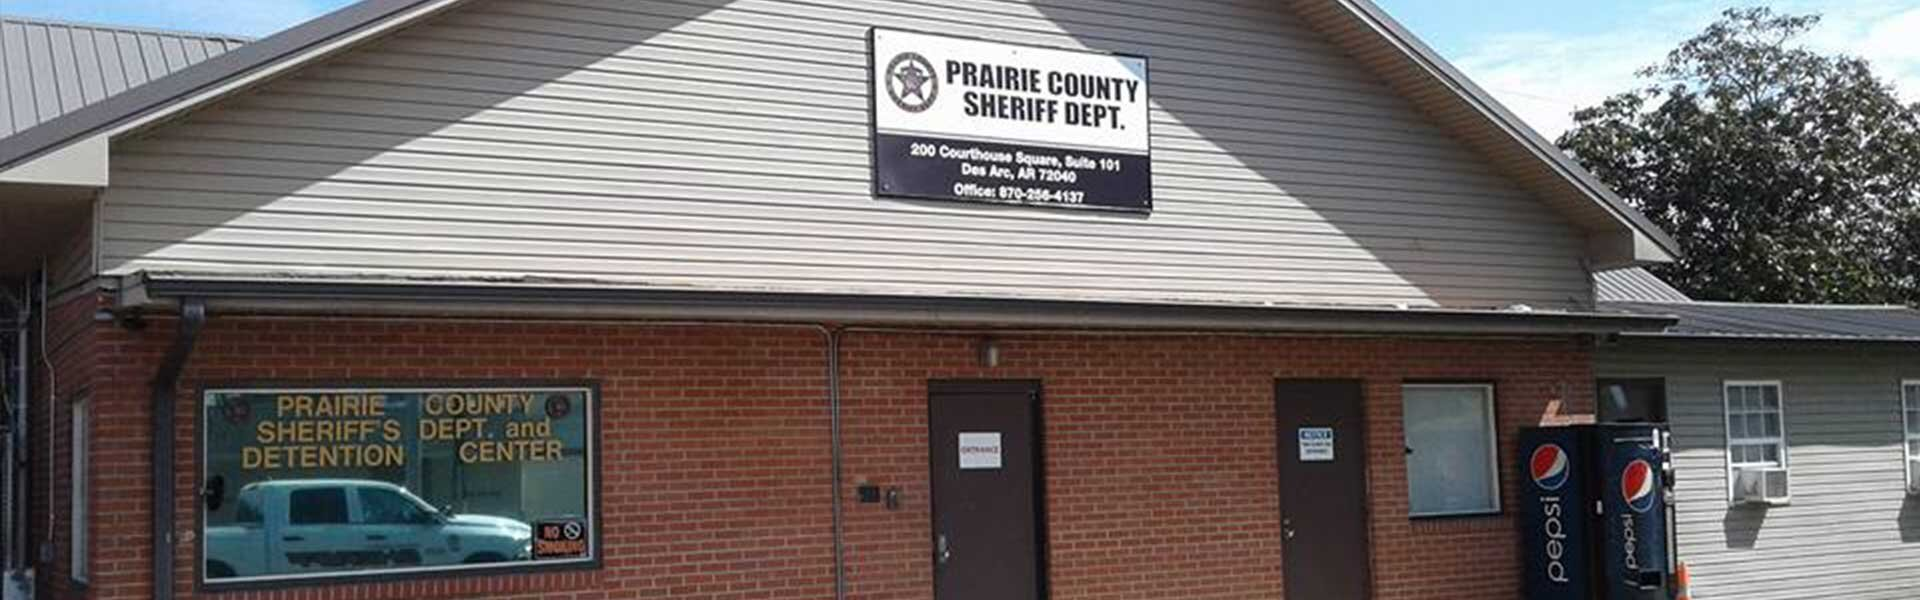 Prairie County Sheriff Department main office building.